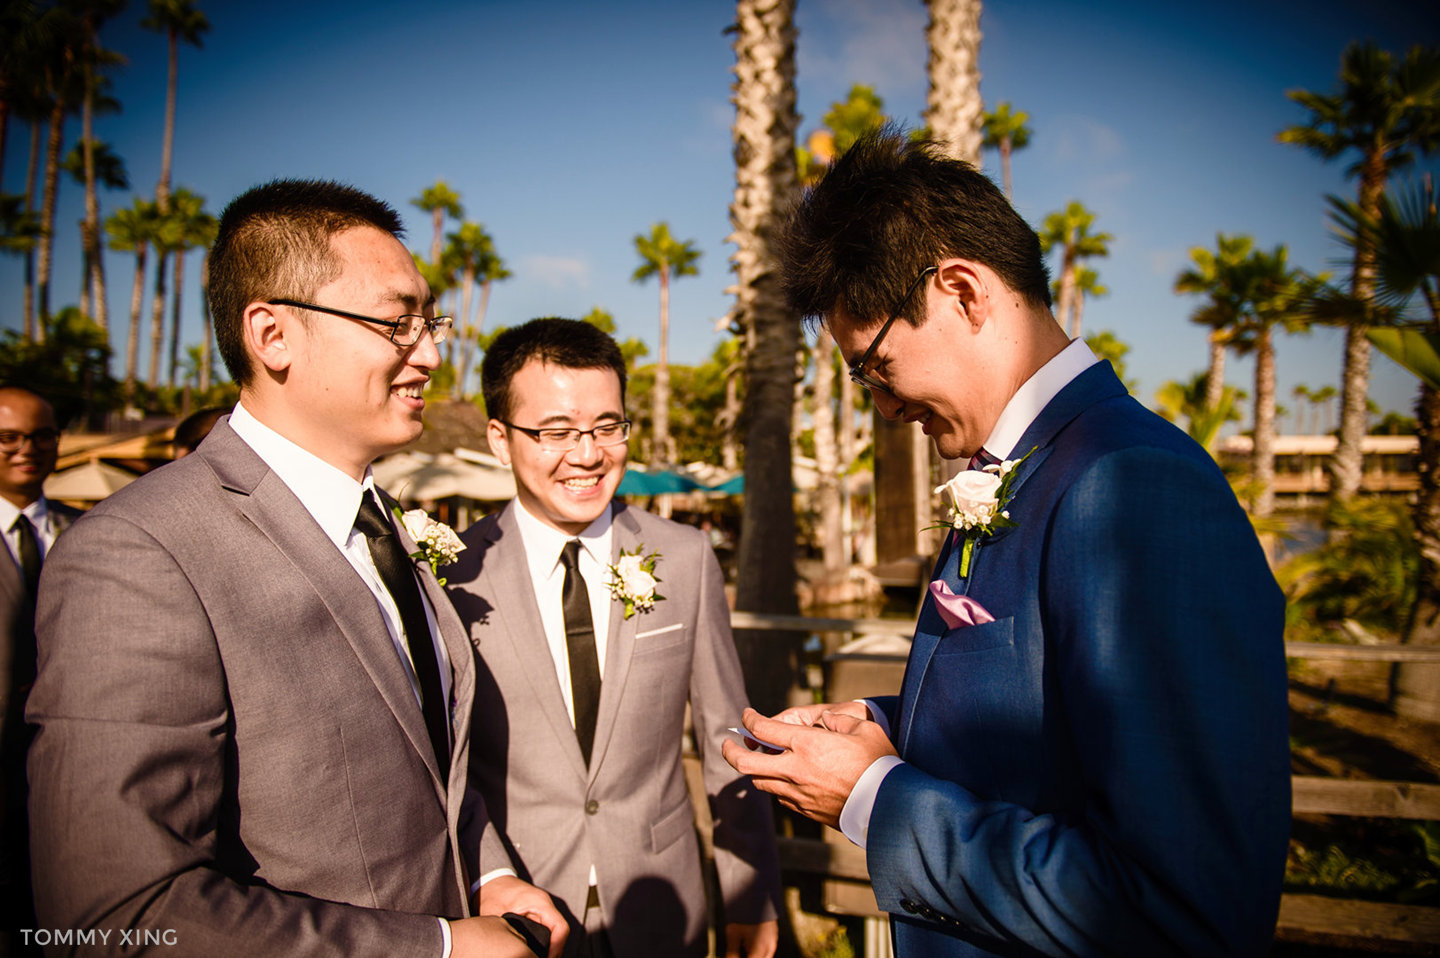 Paradise Point Resort Wedding Xiaolu & Bin San Diego 圣地亚哥婚礼摄影跟拍 Tommy Xing Photography 洛杉矶婚礼婚纱照摄影师 087.jpg